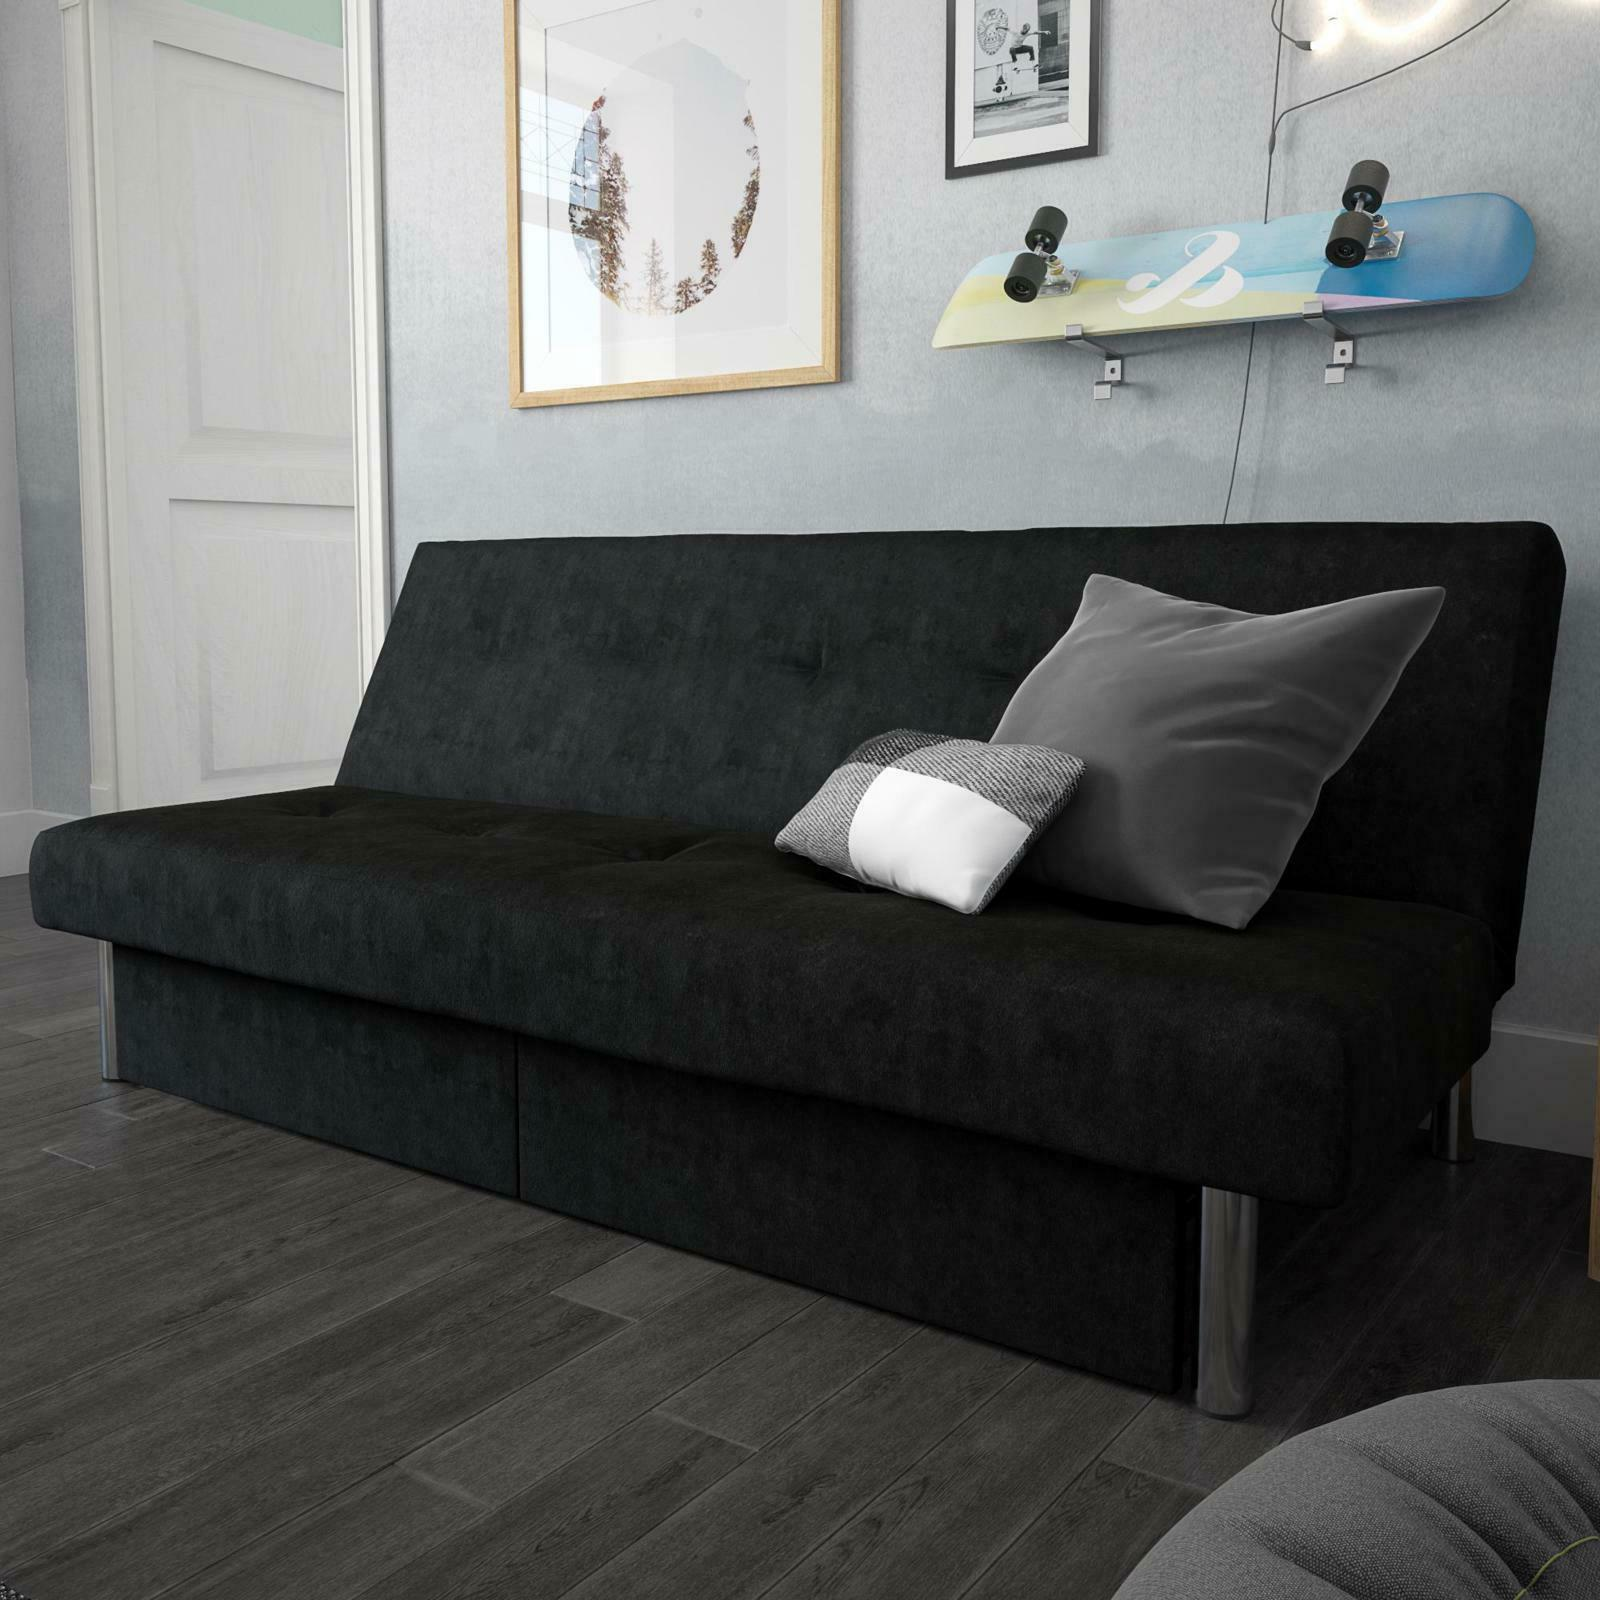 Convertible Futon Couch Sofa Bed Sleeper Microfiber Living